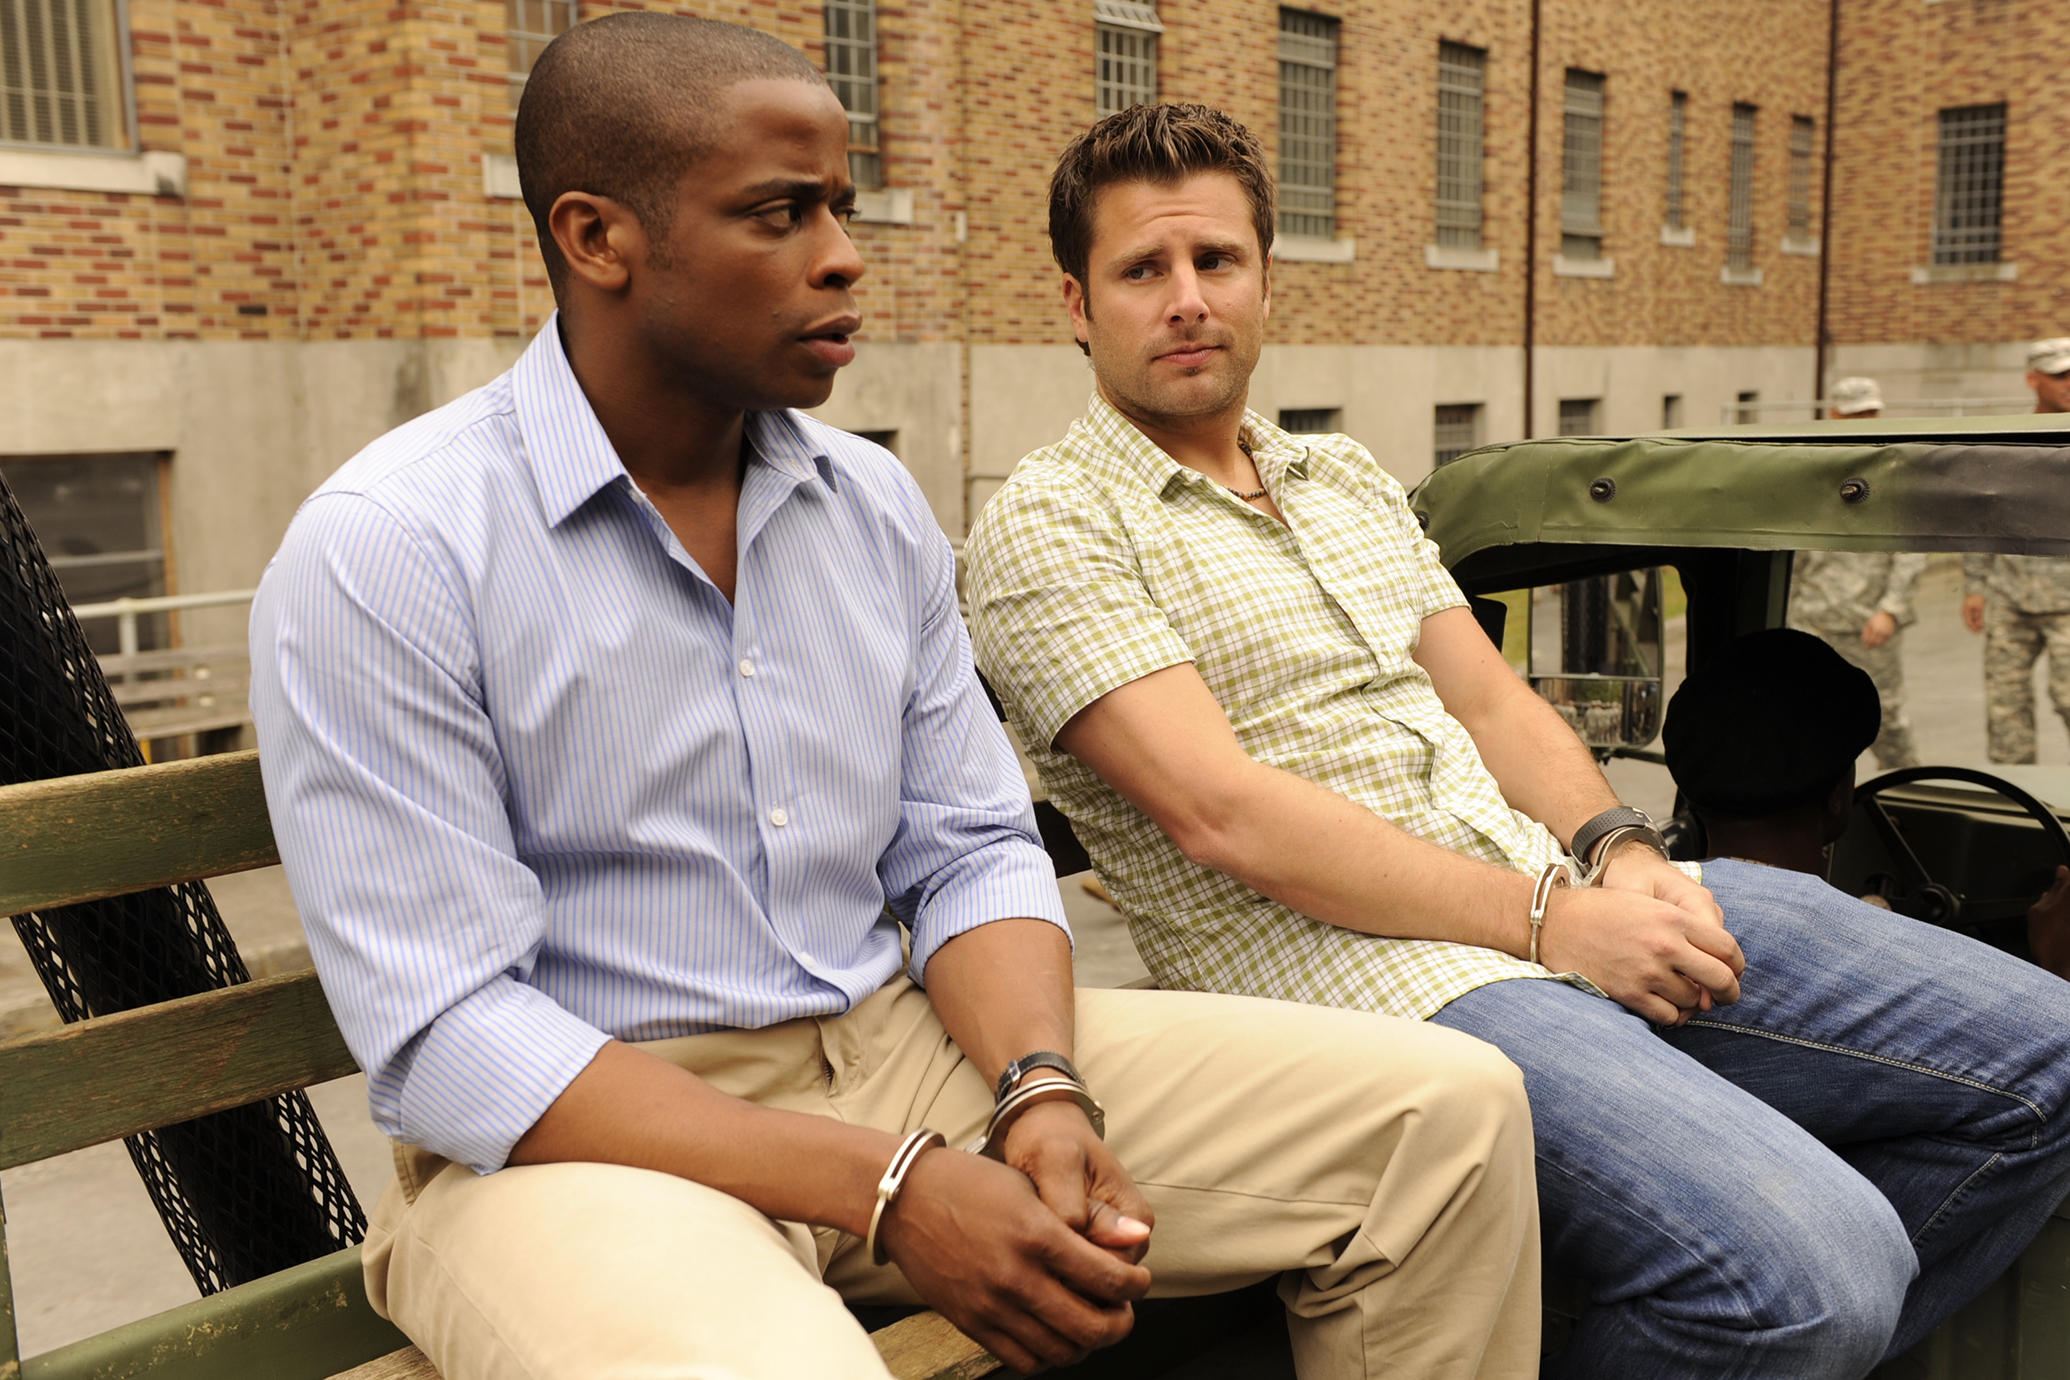 Shawn and Gus in popular binge-able show Psych.